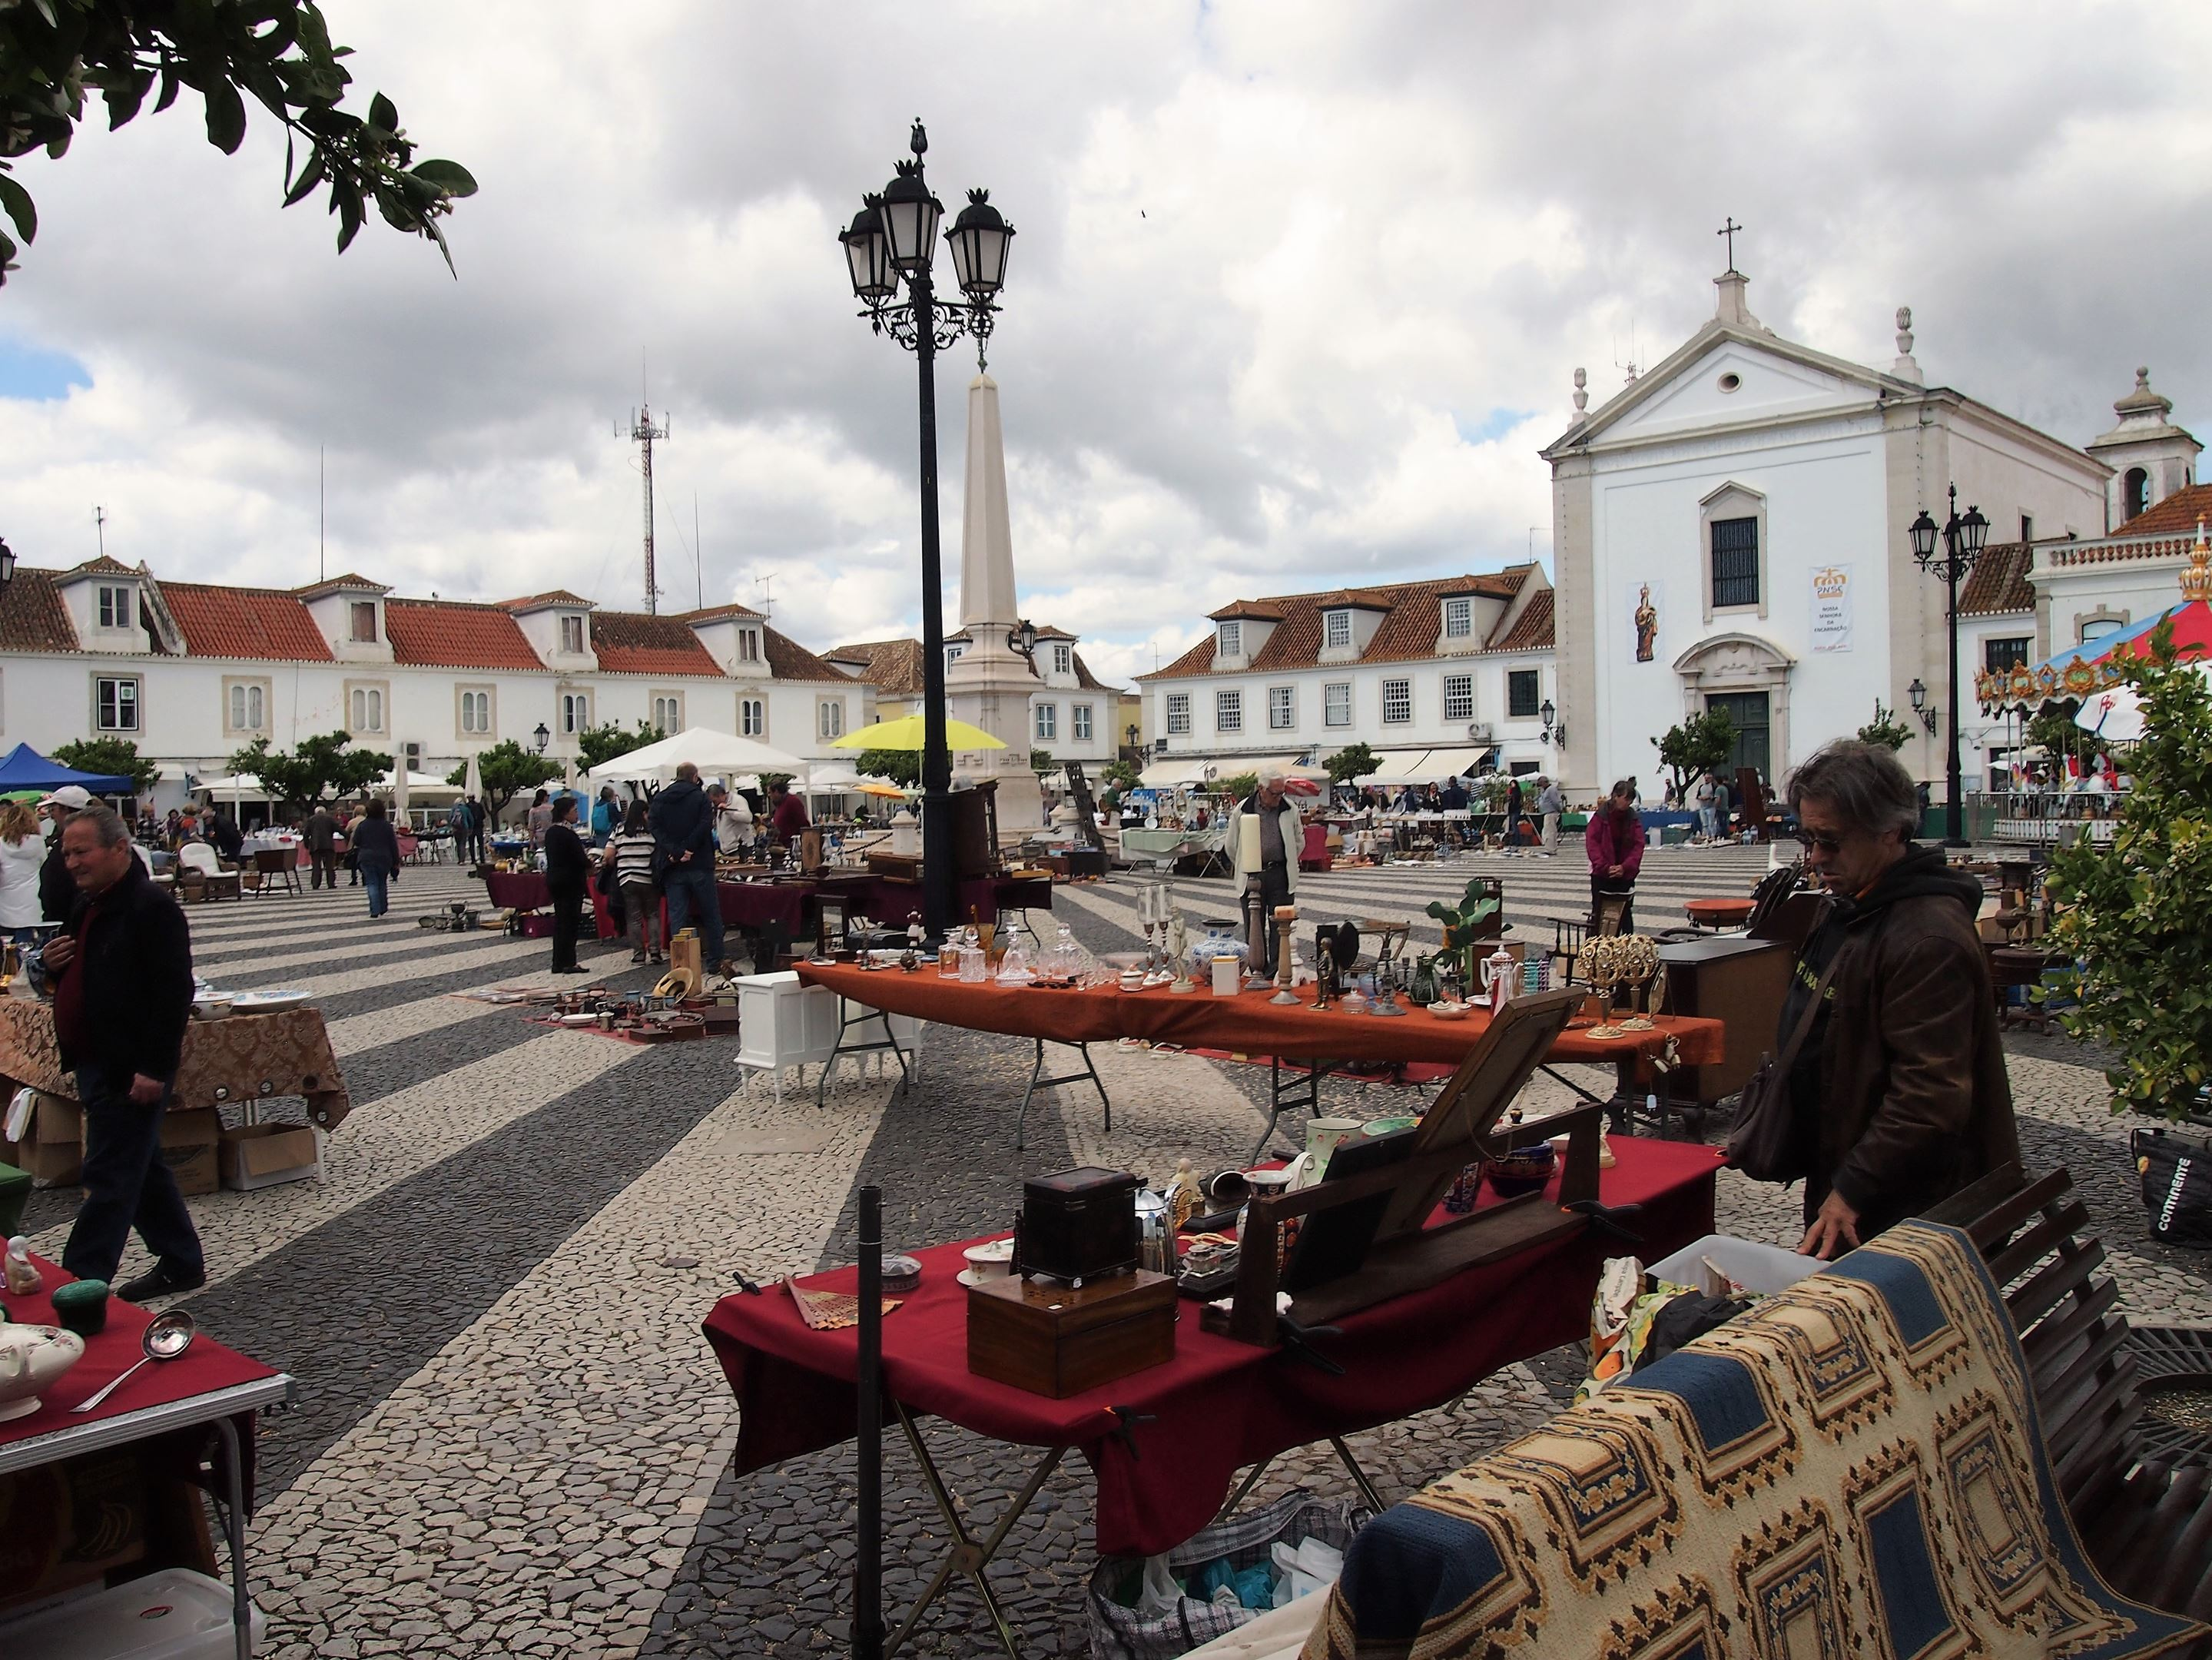 Praça Marquês de Pombal, Vila Real de Santo António. The square is surrounded by orange trees which provide a very strong beautiful citrus smell.